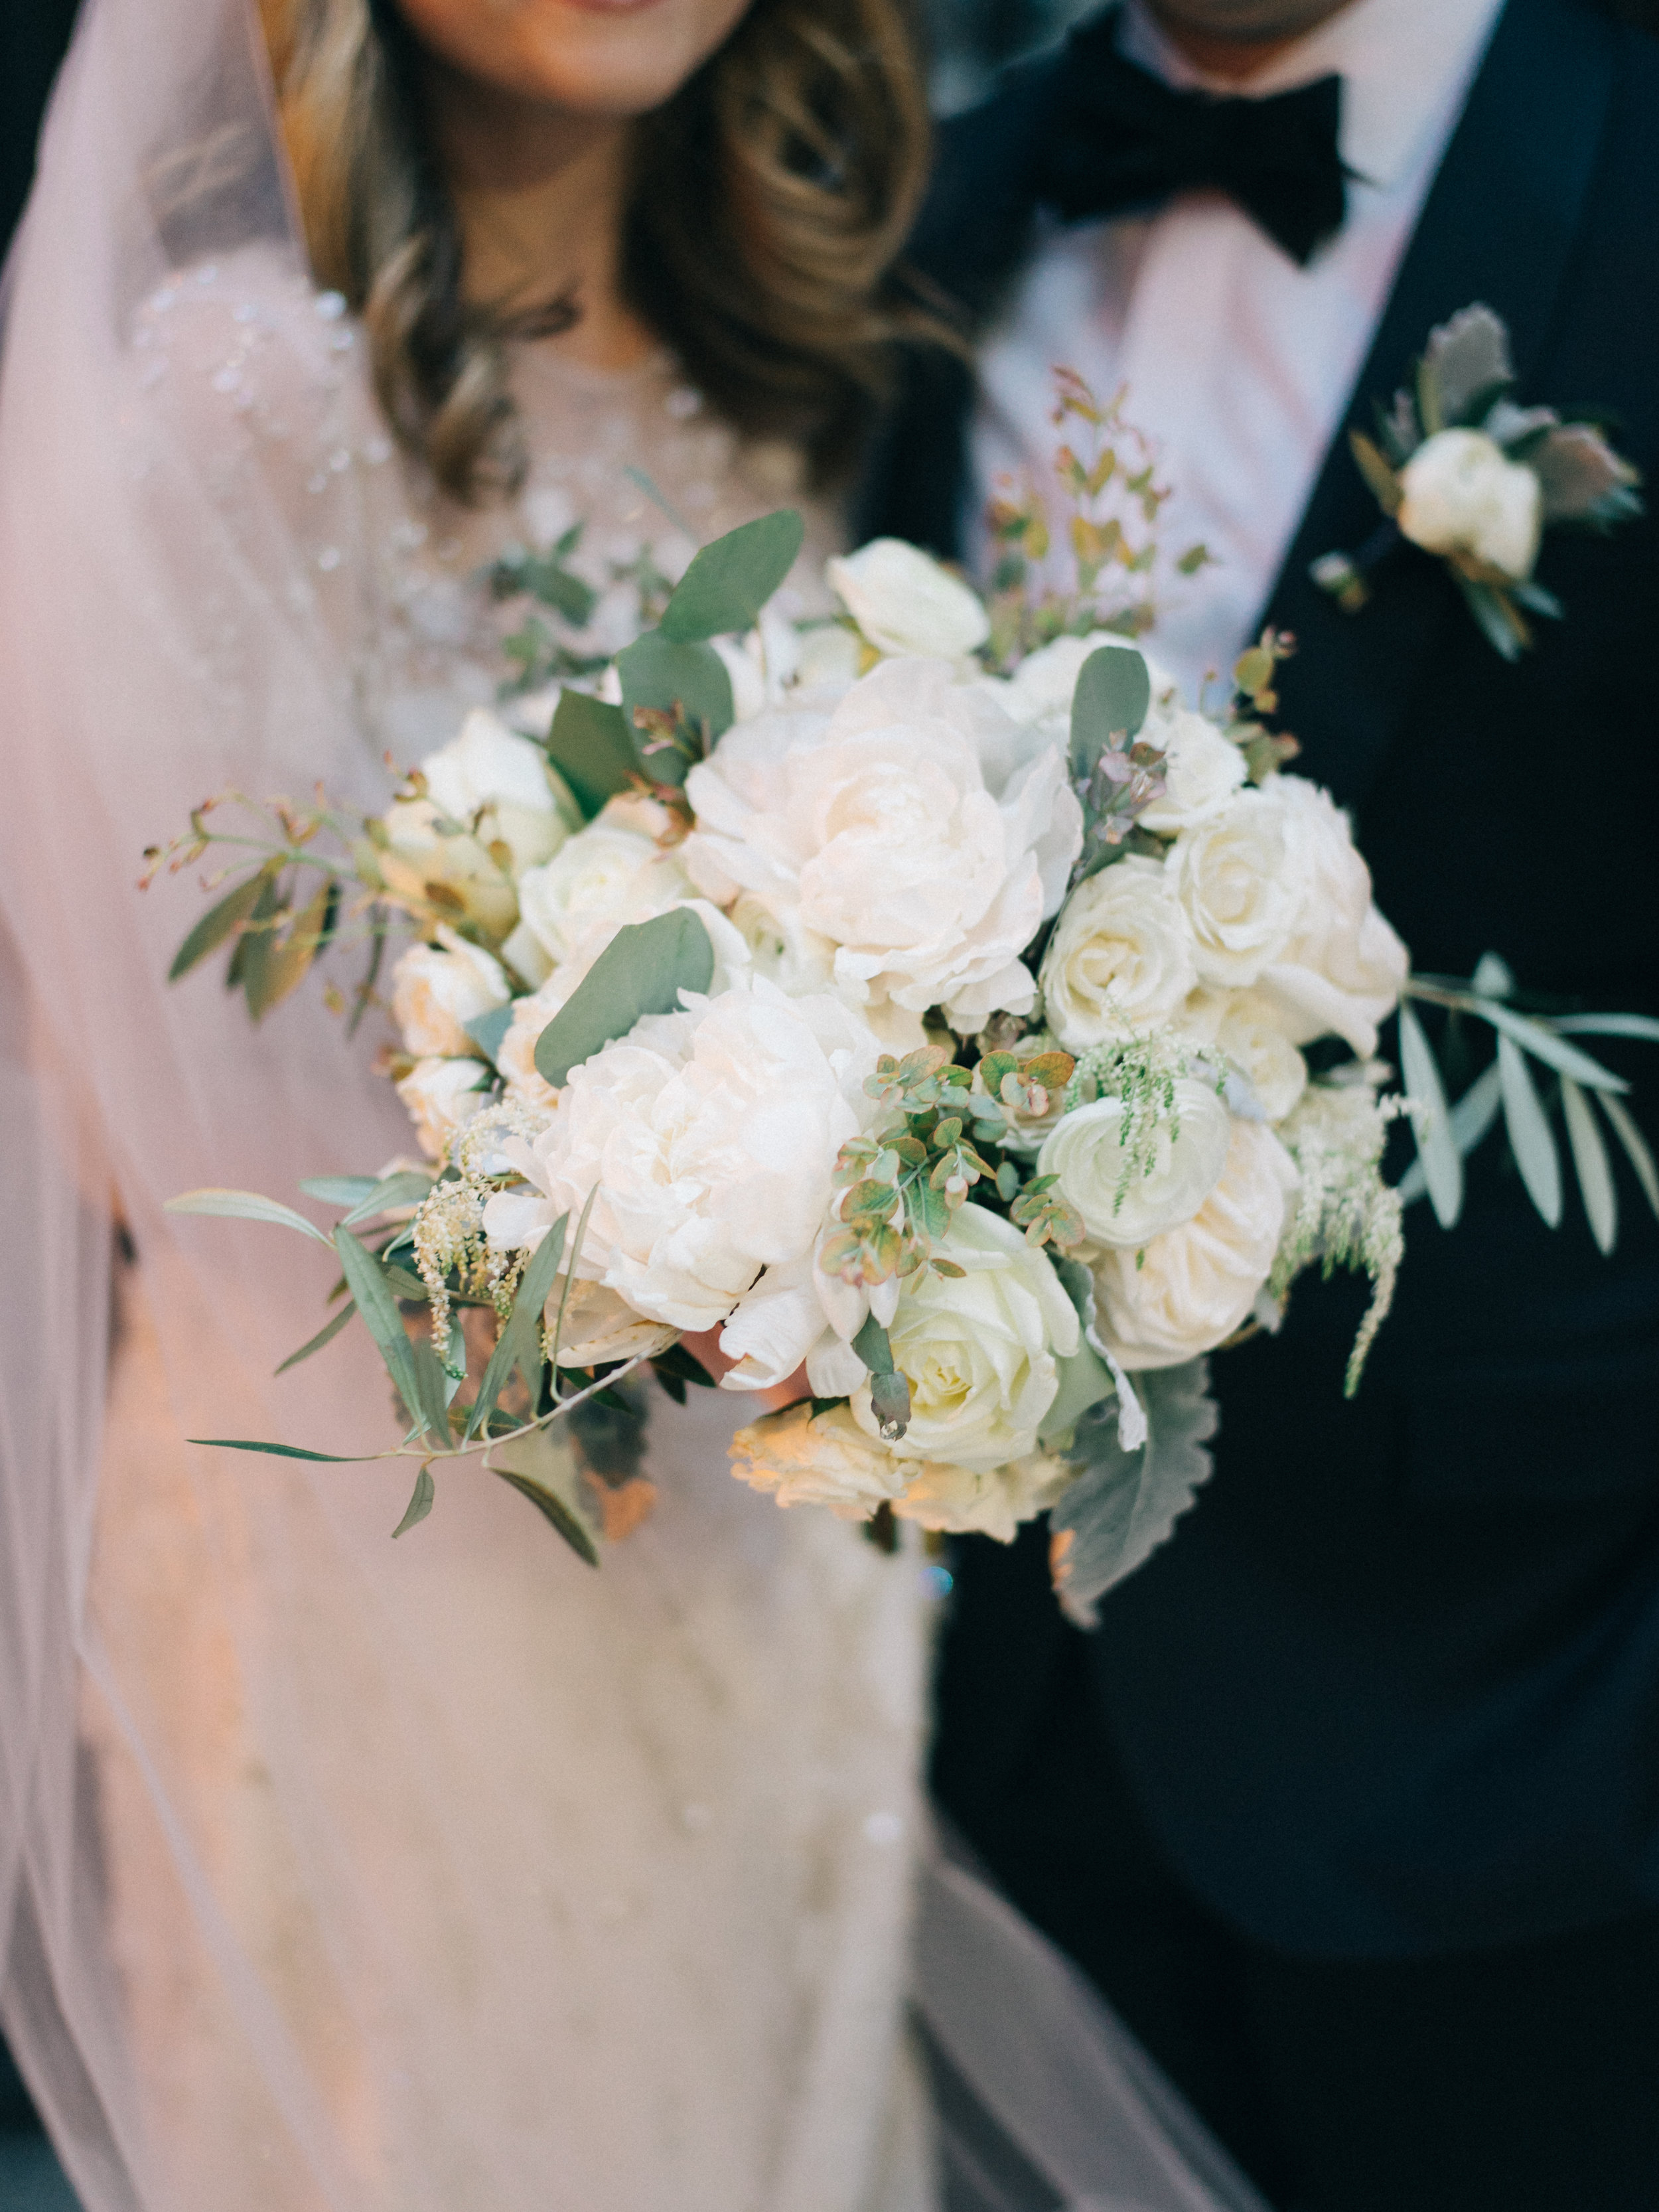 Flowers by Fleur Inc, Planning by Jayne Weddings, Photo by Sean Cook Weddings.  Lush, winter wedding bouquet with peonies